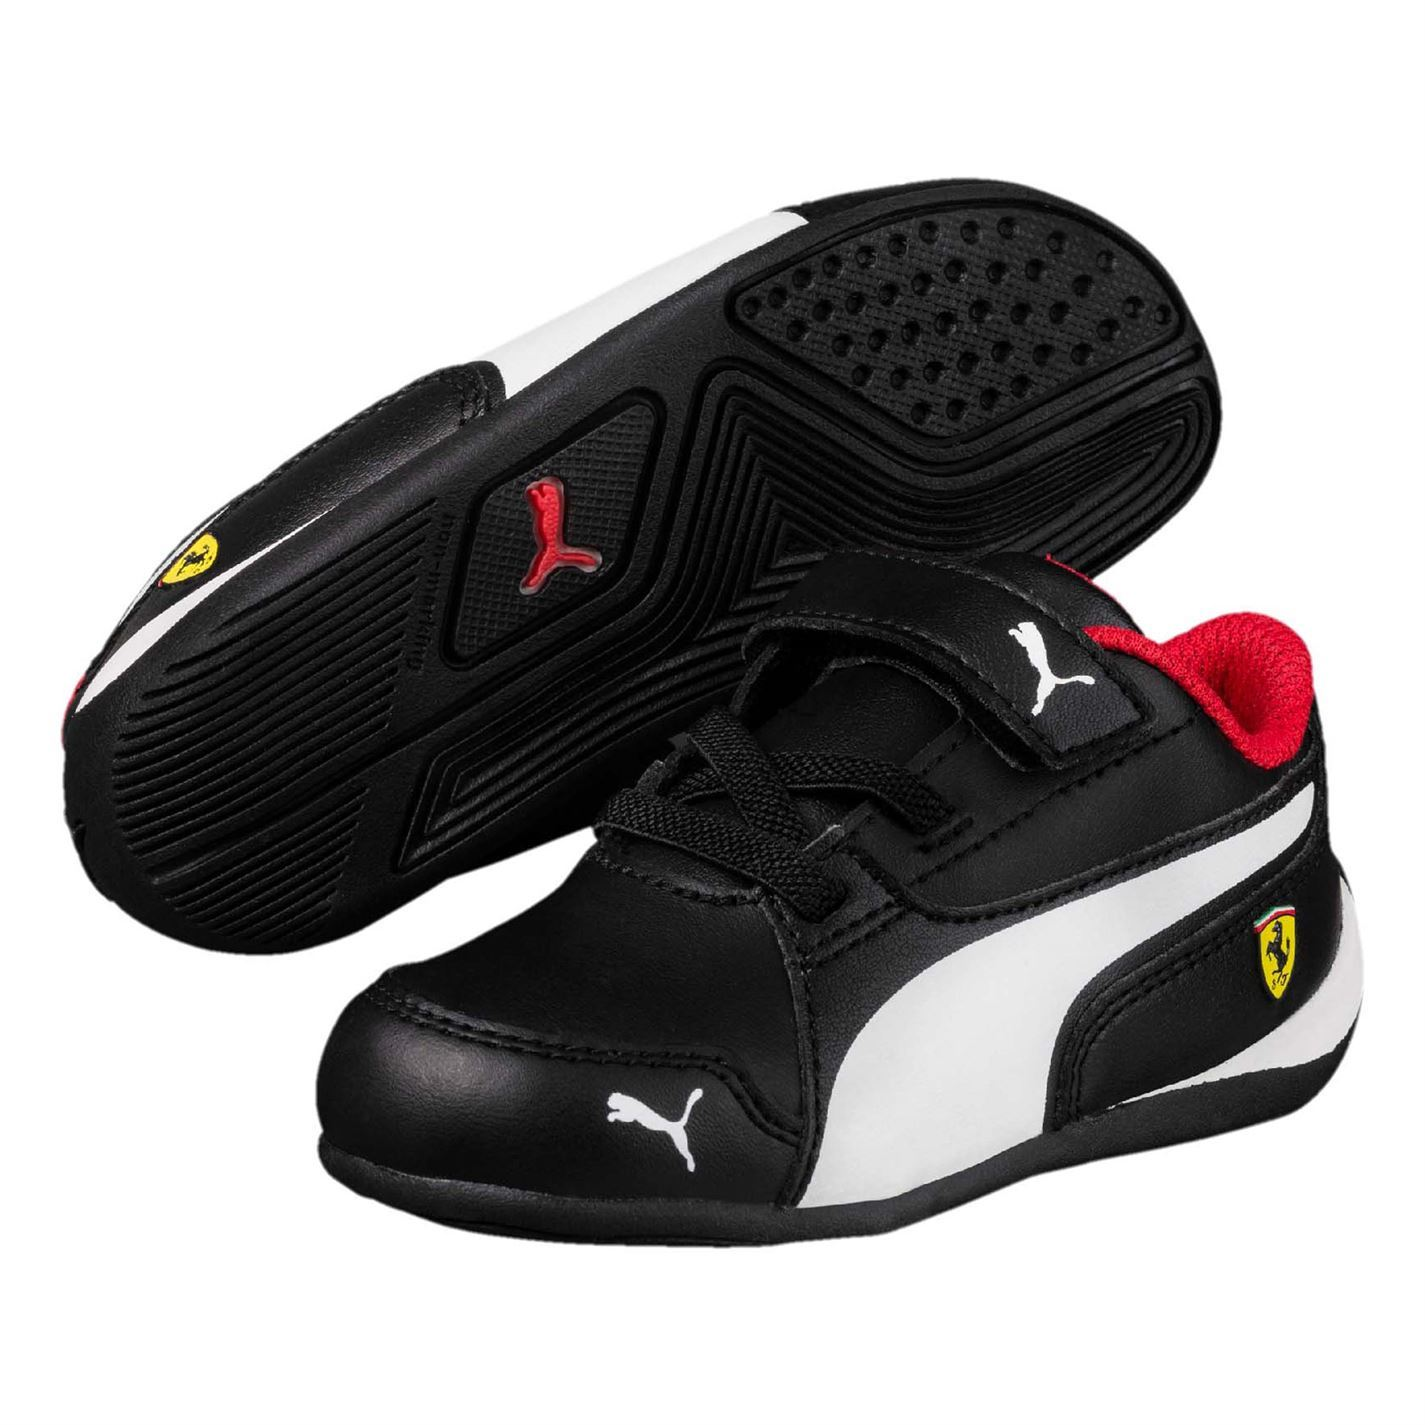 76ca0a3b8040 ... Puma SF Drift Cat 7 Shoes Boys Black White Trainers Footwear ...